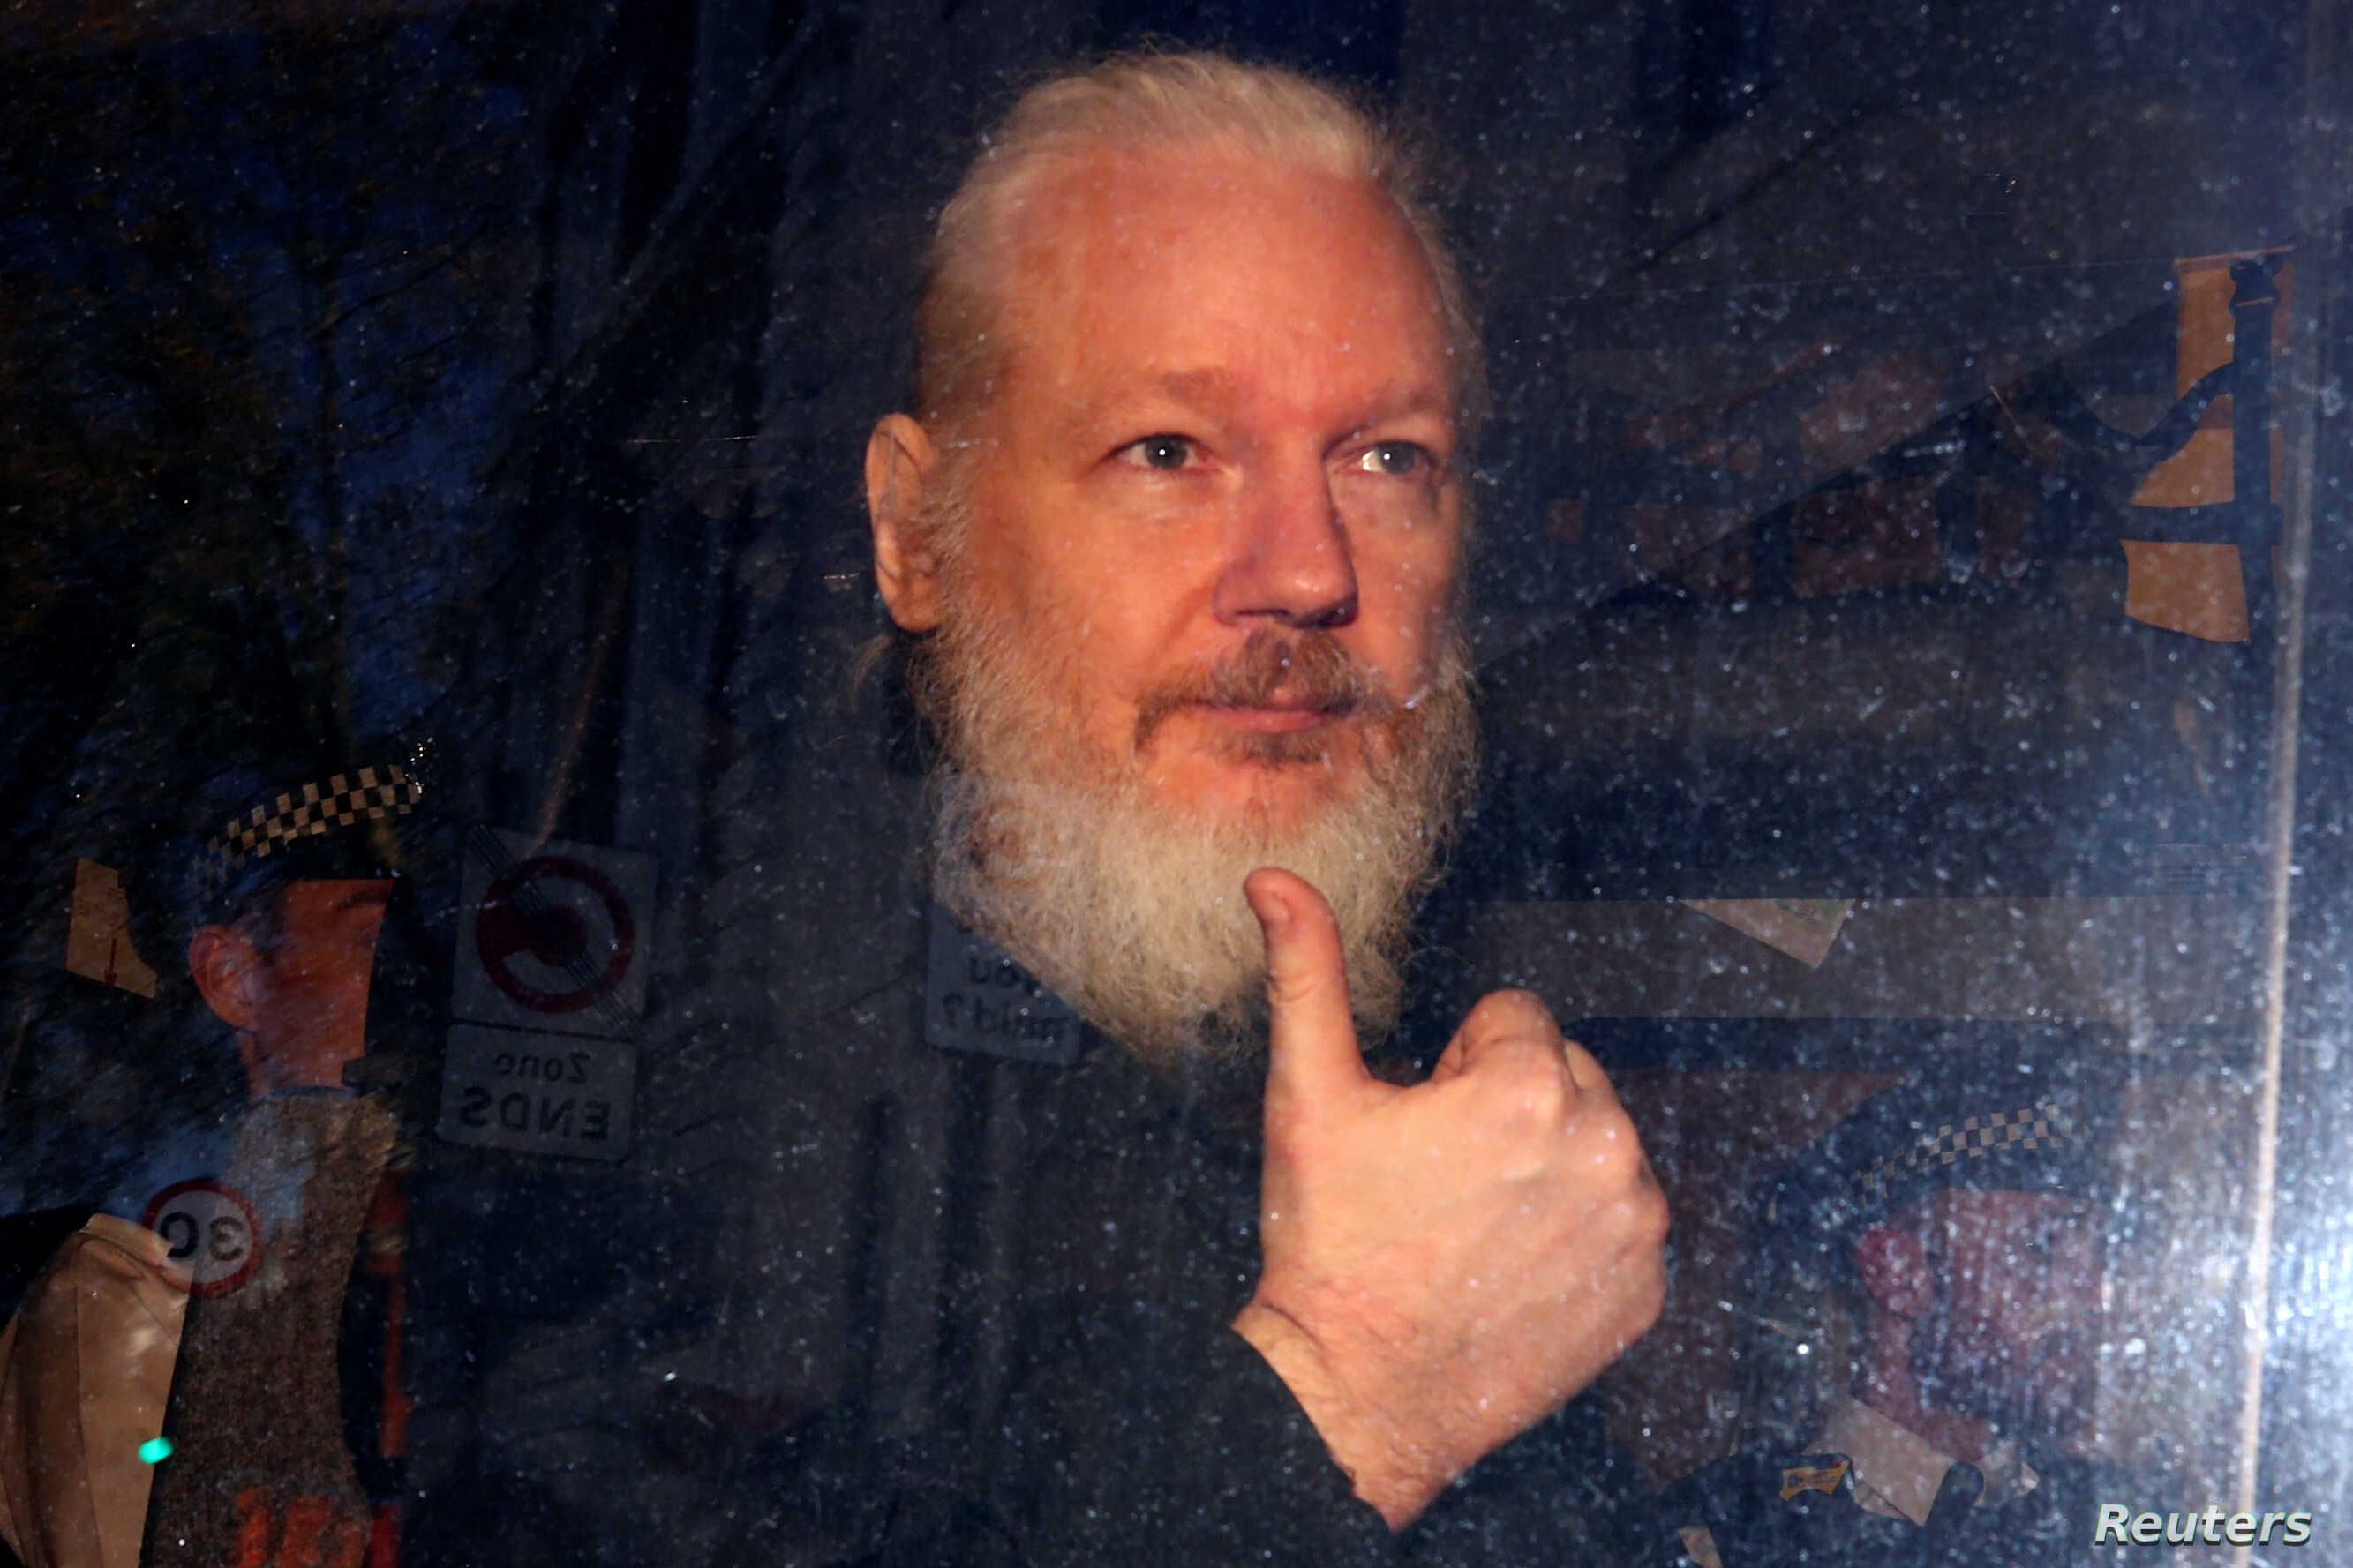 US submits extradition request for Assange